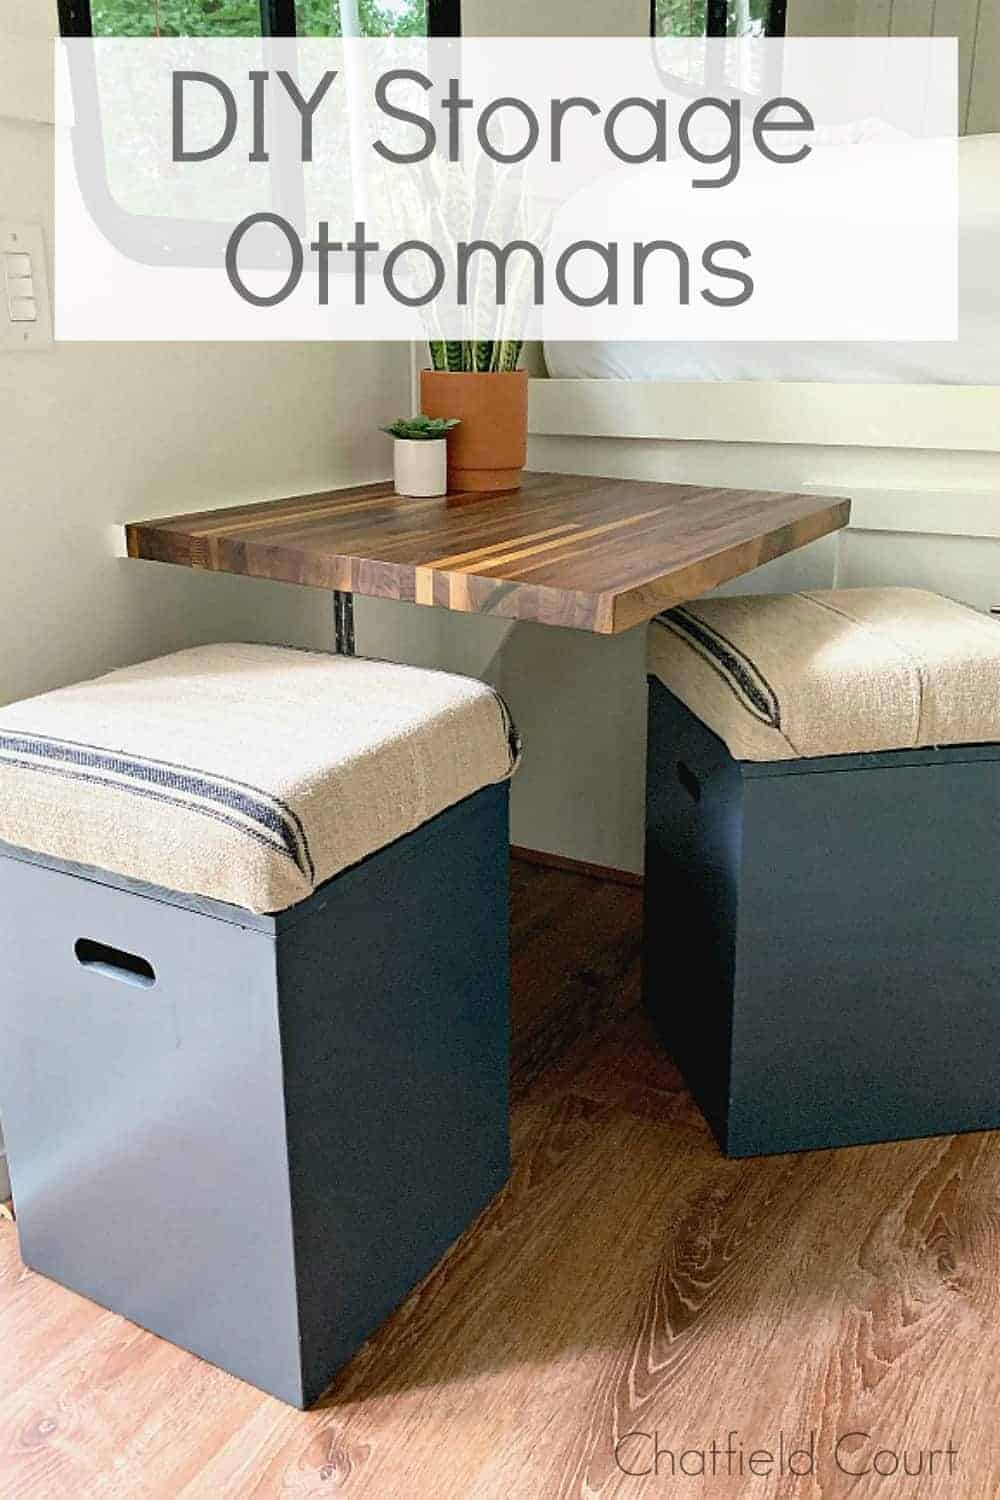 2 navy DIY storage ottomans lined up against a wall in an RV